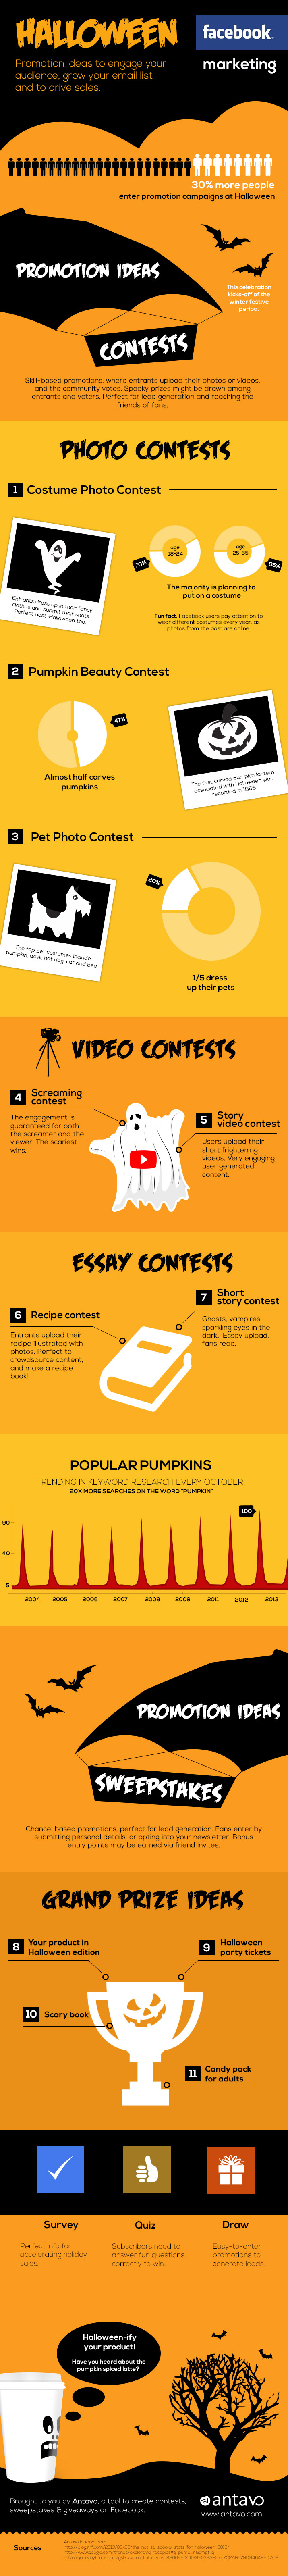 why you should run a facebook halloween contest this week